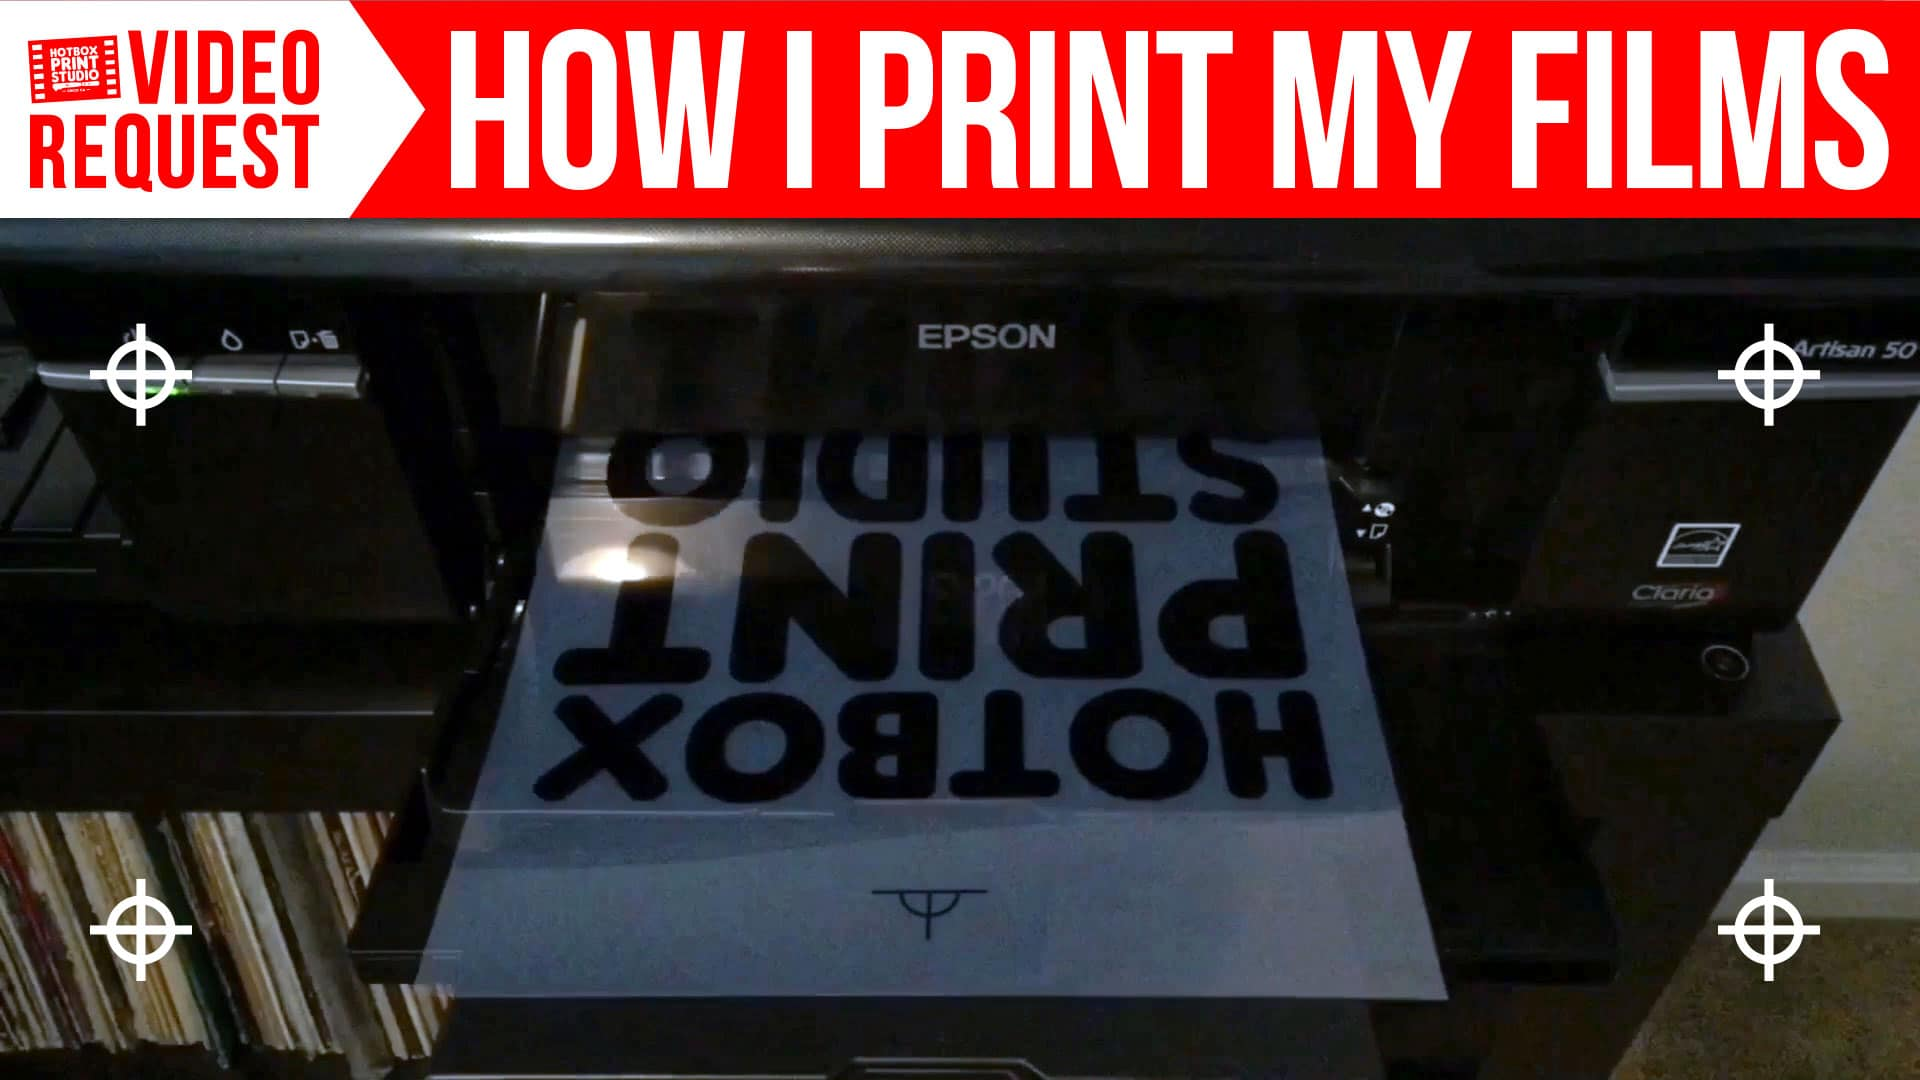 Video Request: How I Print My Films by Hotbox Print Studio - How to get darker film transparencies for screen printing.